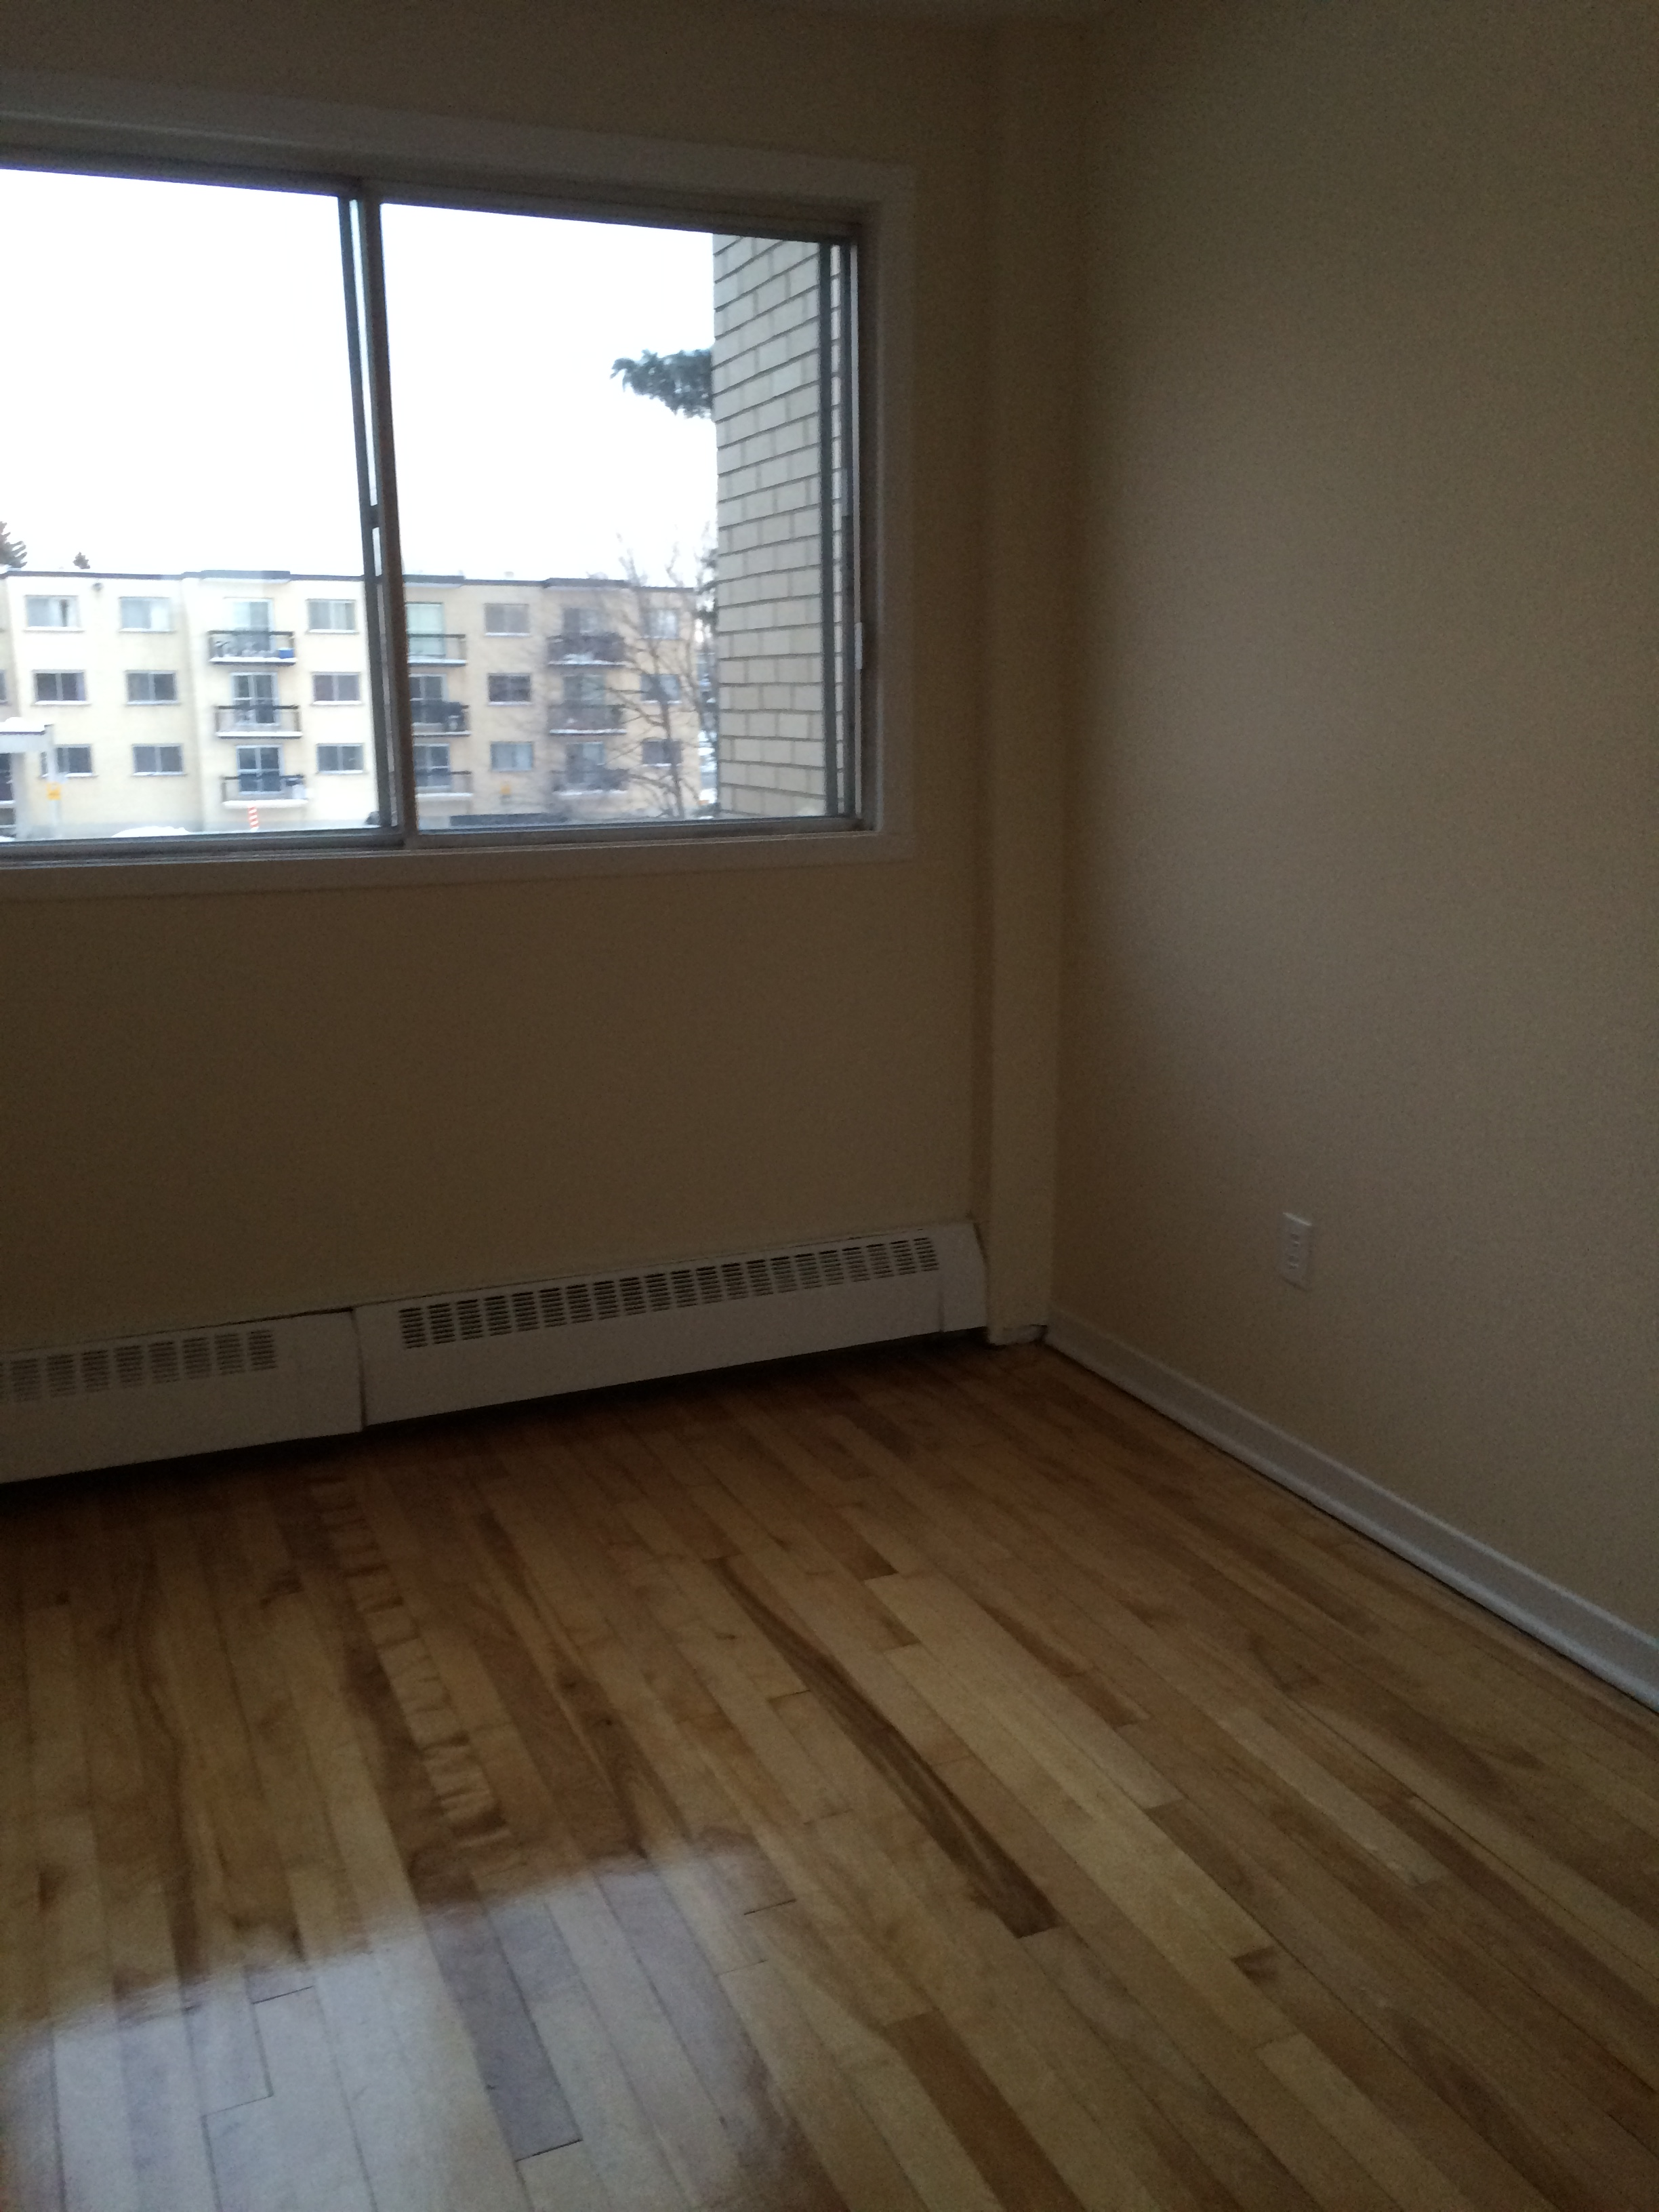 1 bedroom Apartments for rent in Pierrefonds-Roxboro at Place Riviera - Photo 07 - RentQuebecApartments – L35788